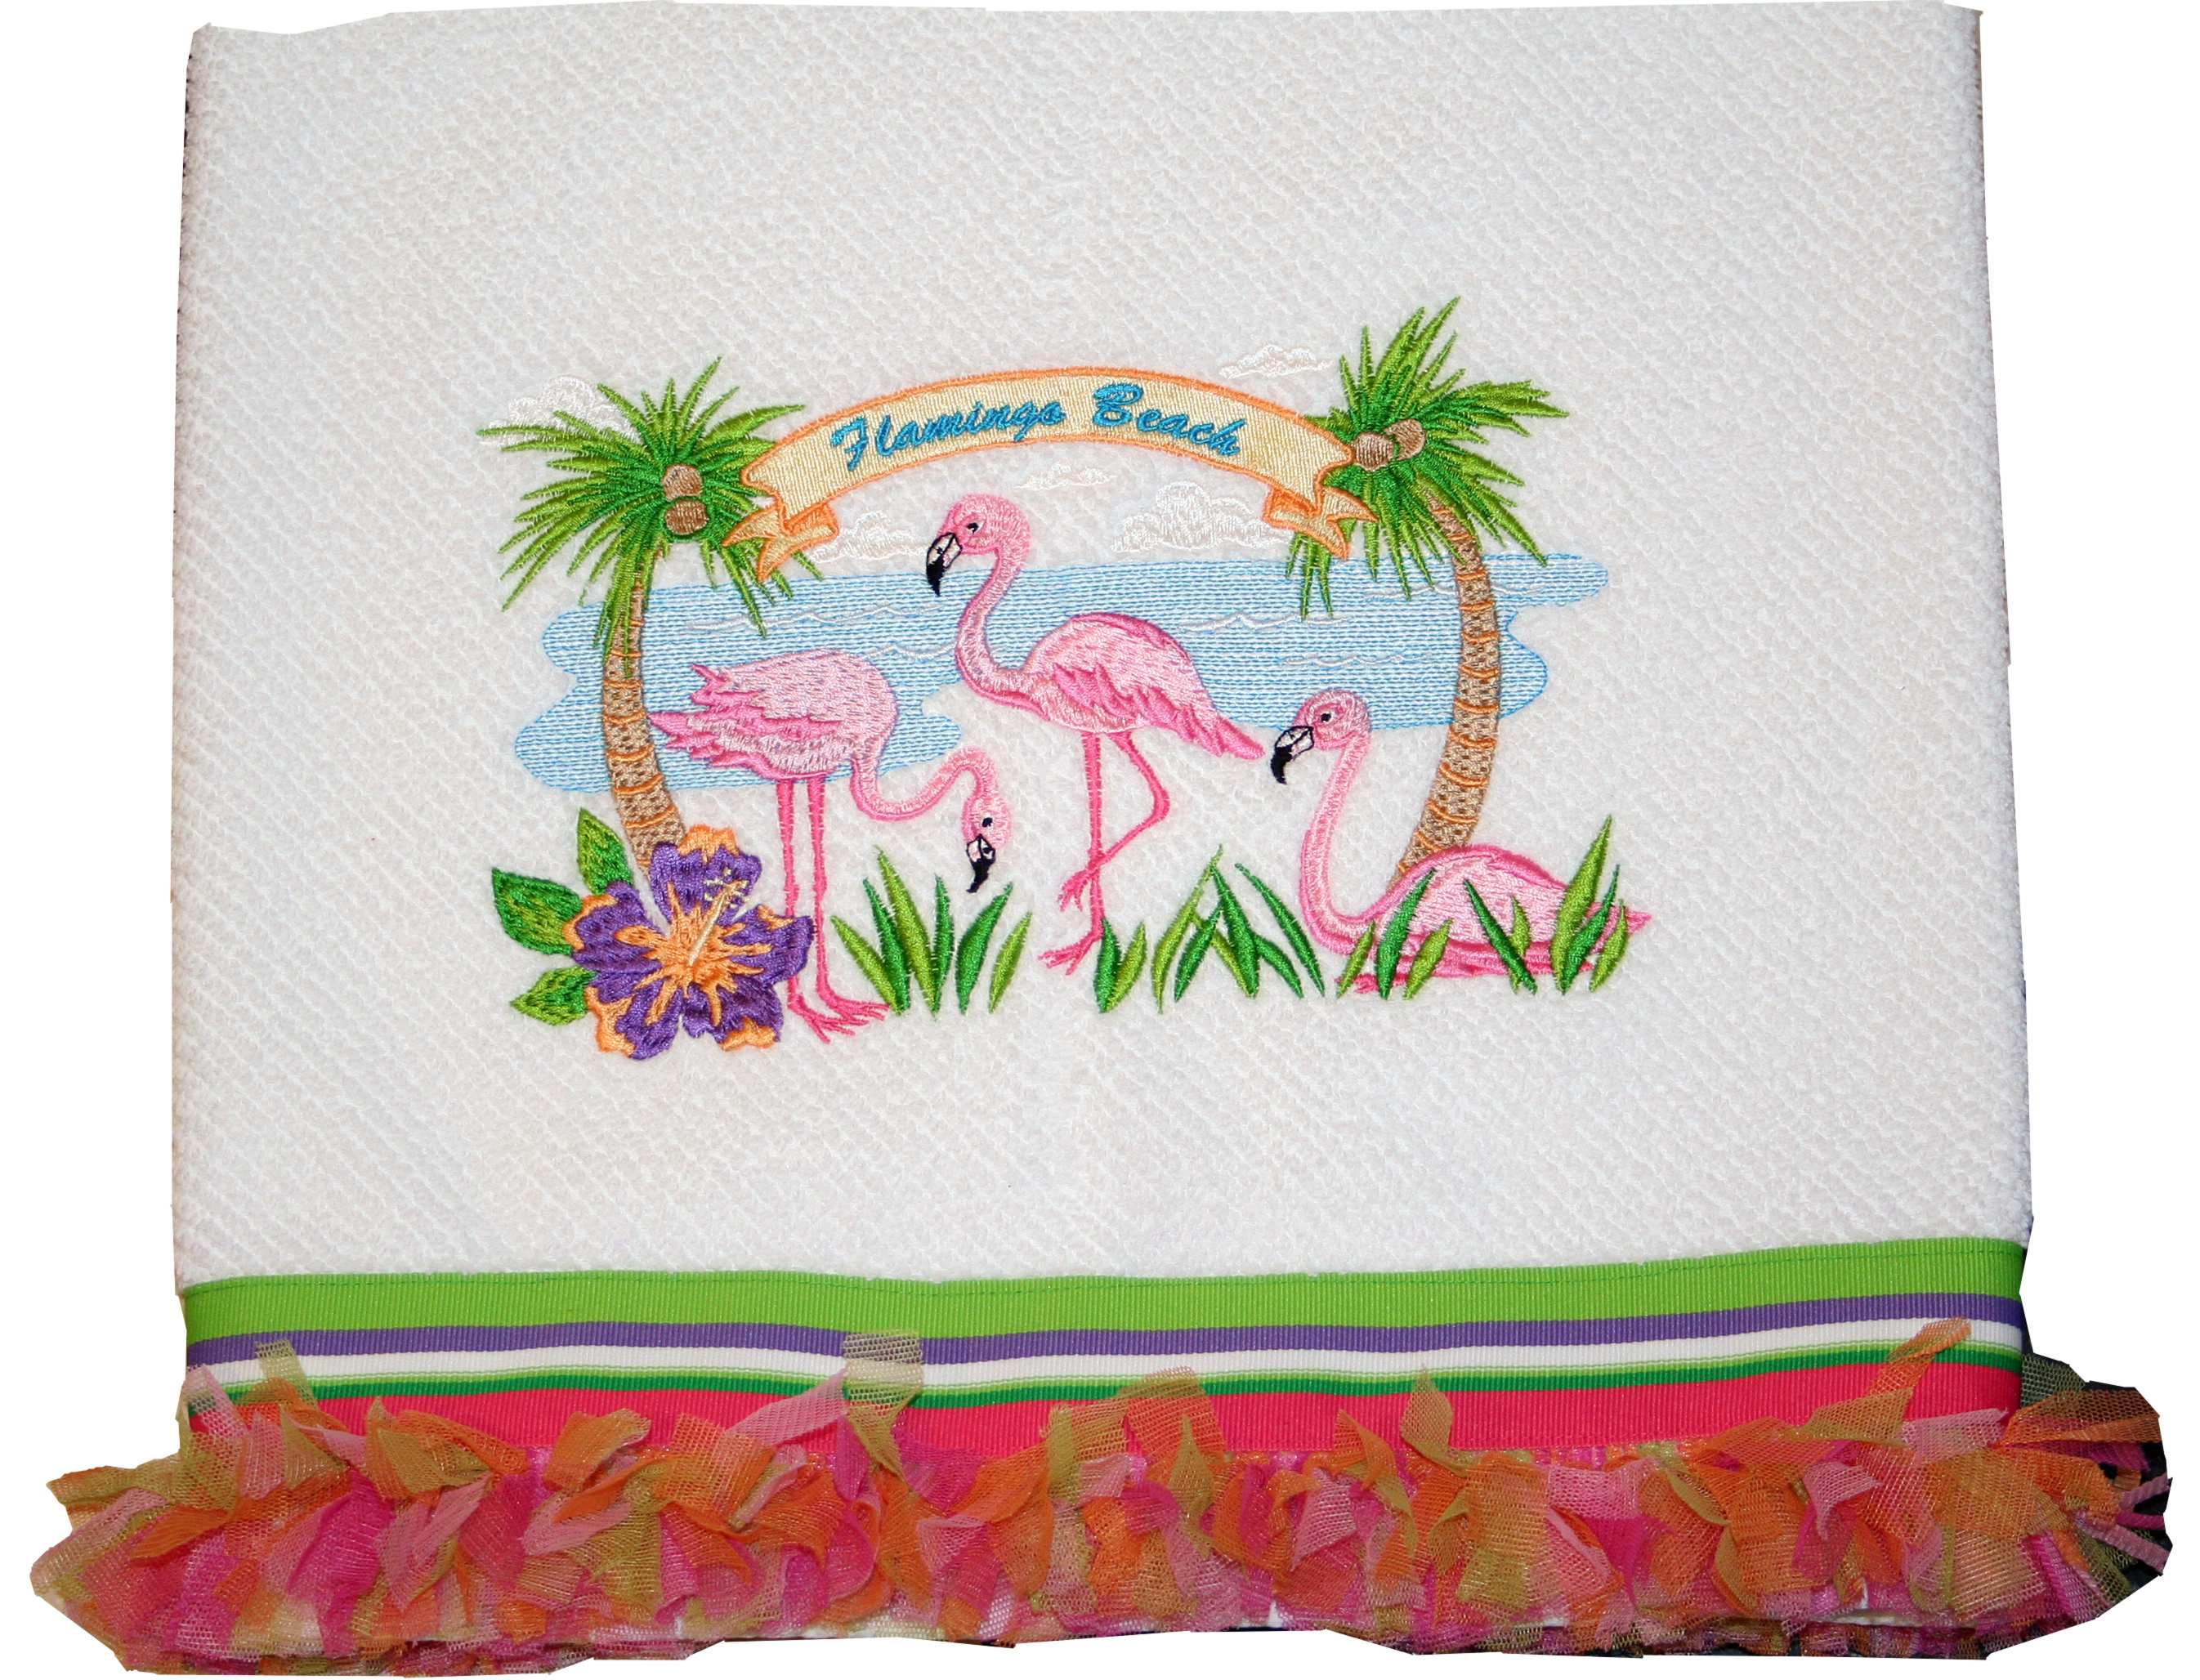 Flamingo beach design pack embroidery design collection by for Beach house embroidery design